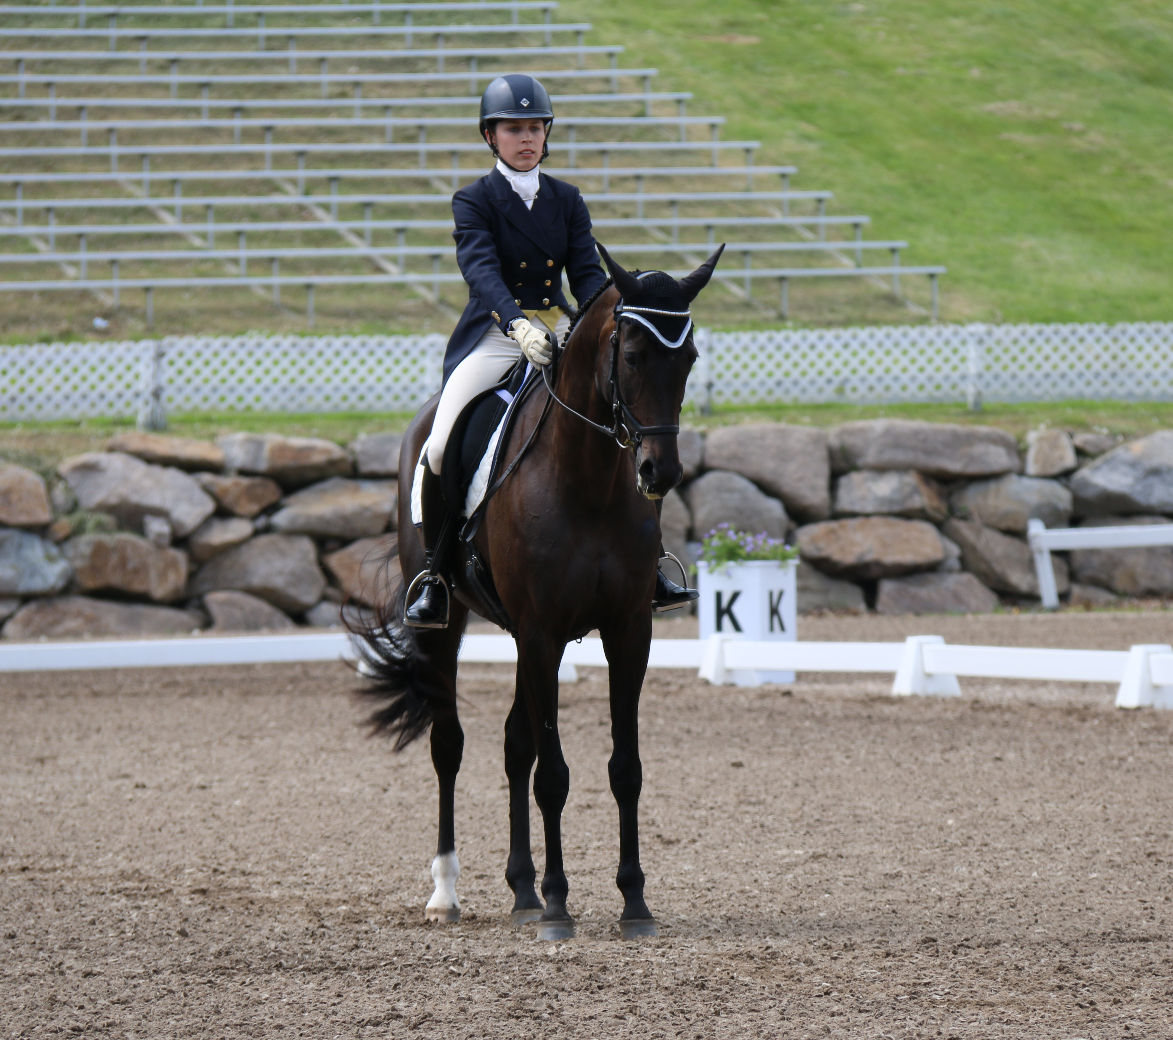 Lucia Strini and Sammy Jo, tied for 3rd in the 2* at Bromont. Photo by Leslie Wylie.